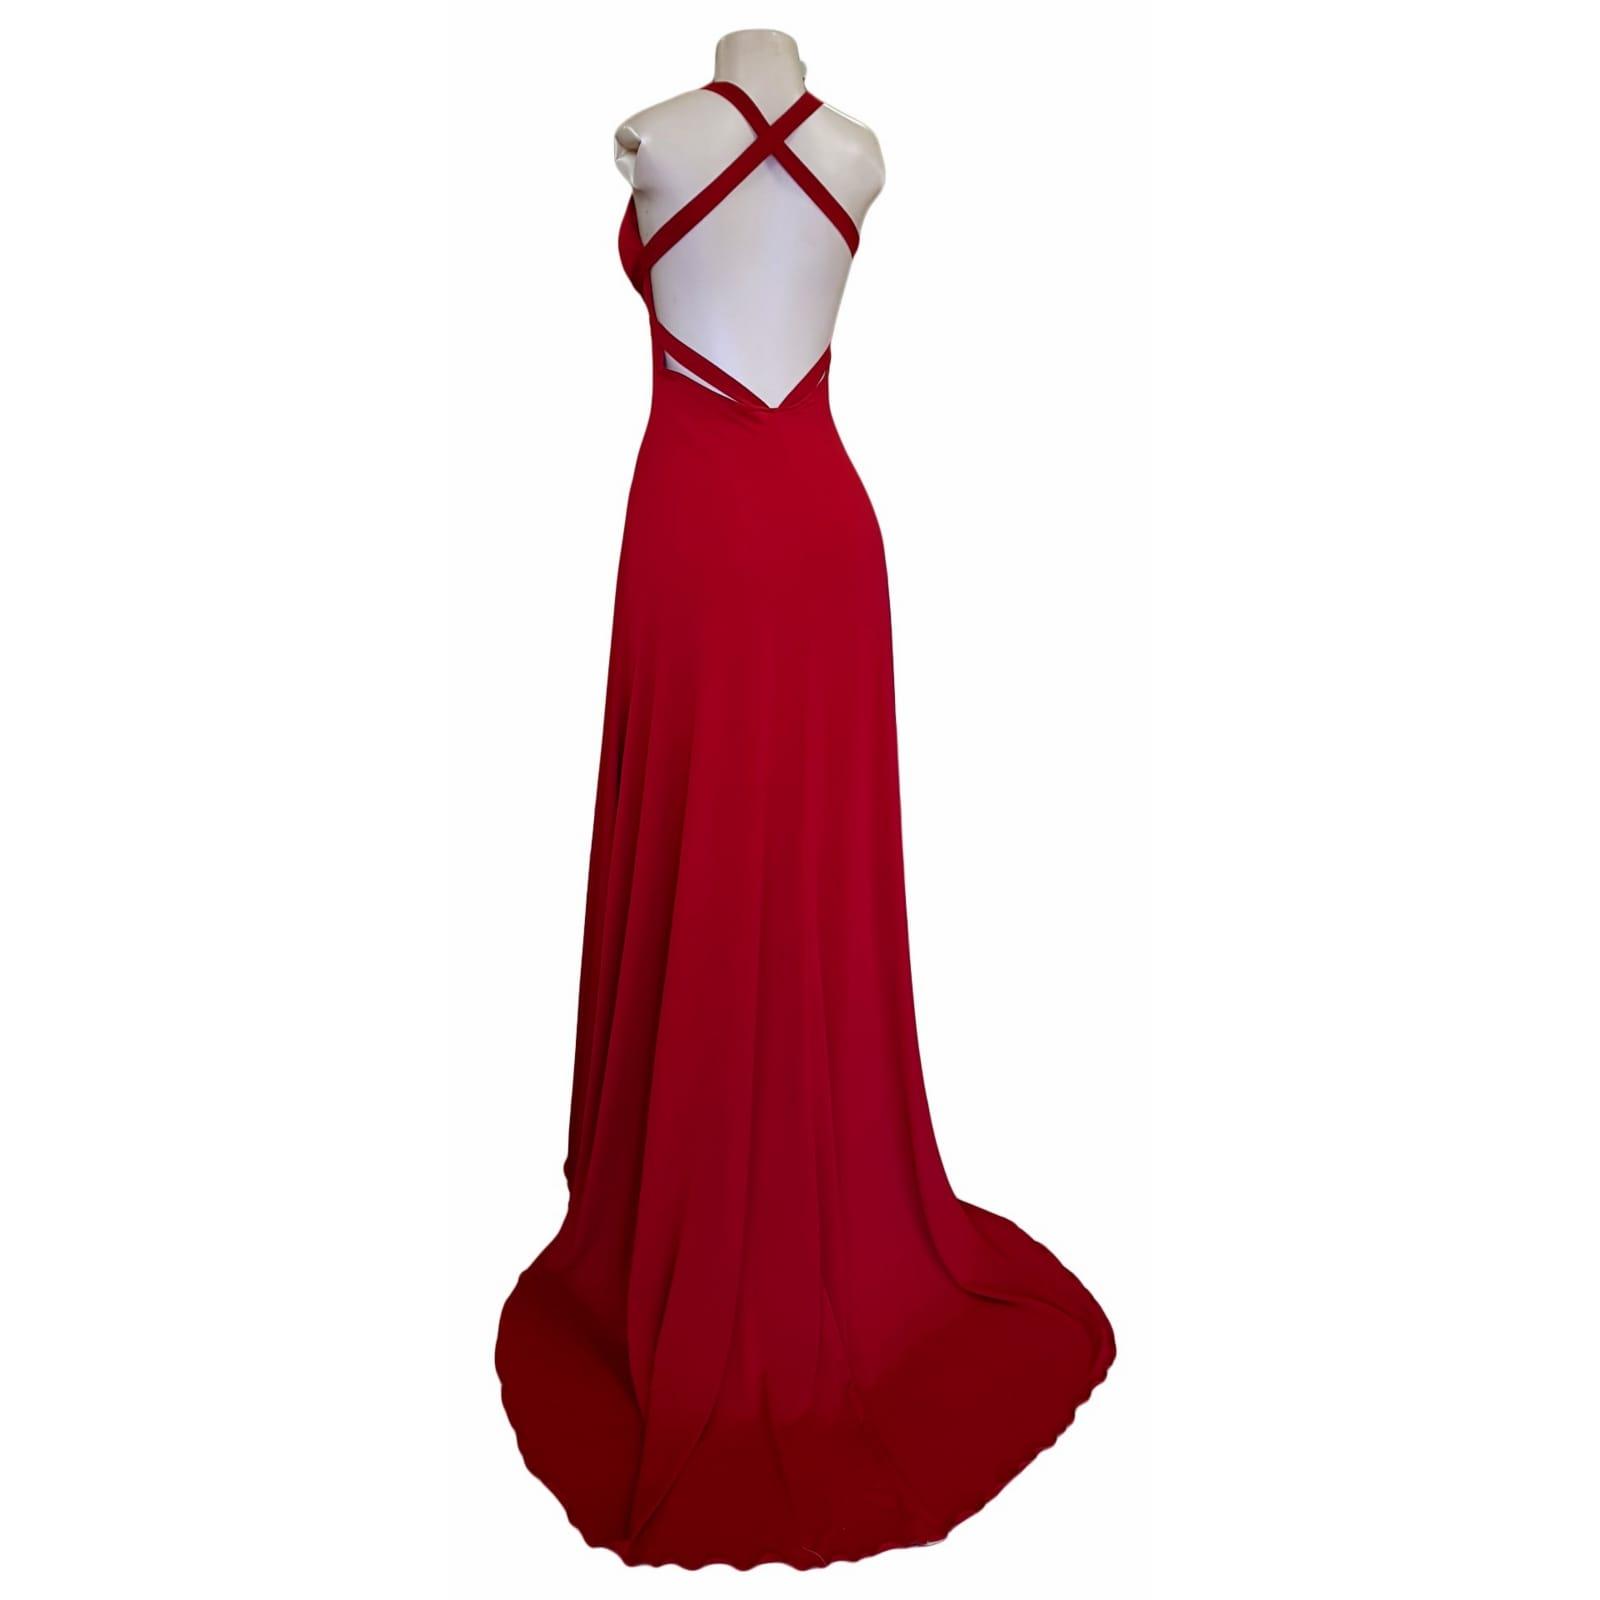 Red long sexy long prom dress 6 red long sexy long prom dress with a low v neckline & slit, a low open back with cross straps on the upper back, with a train.